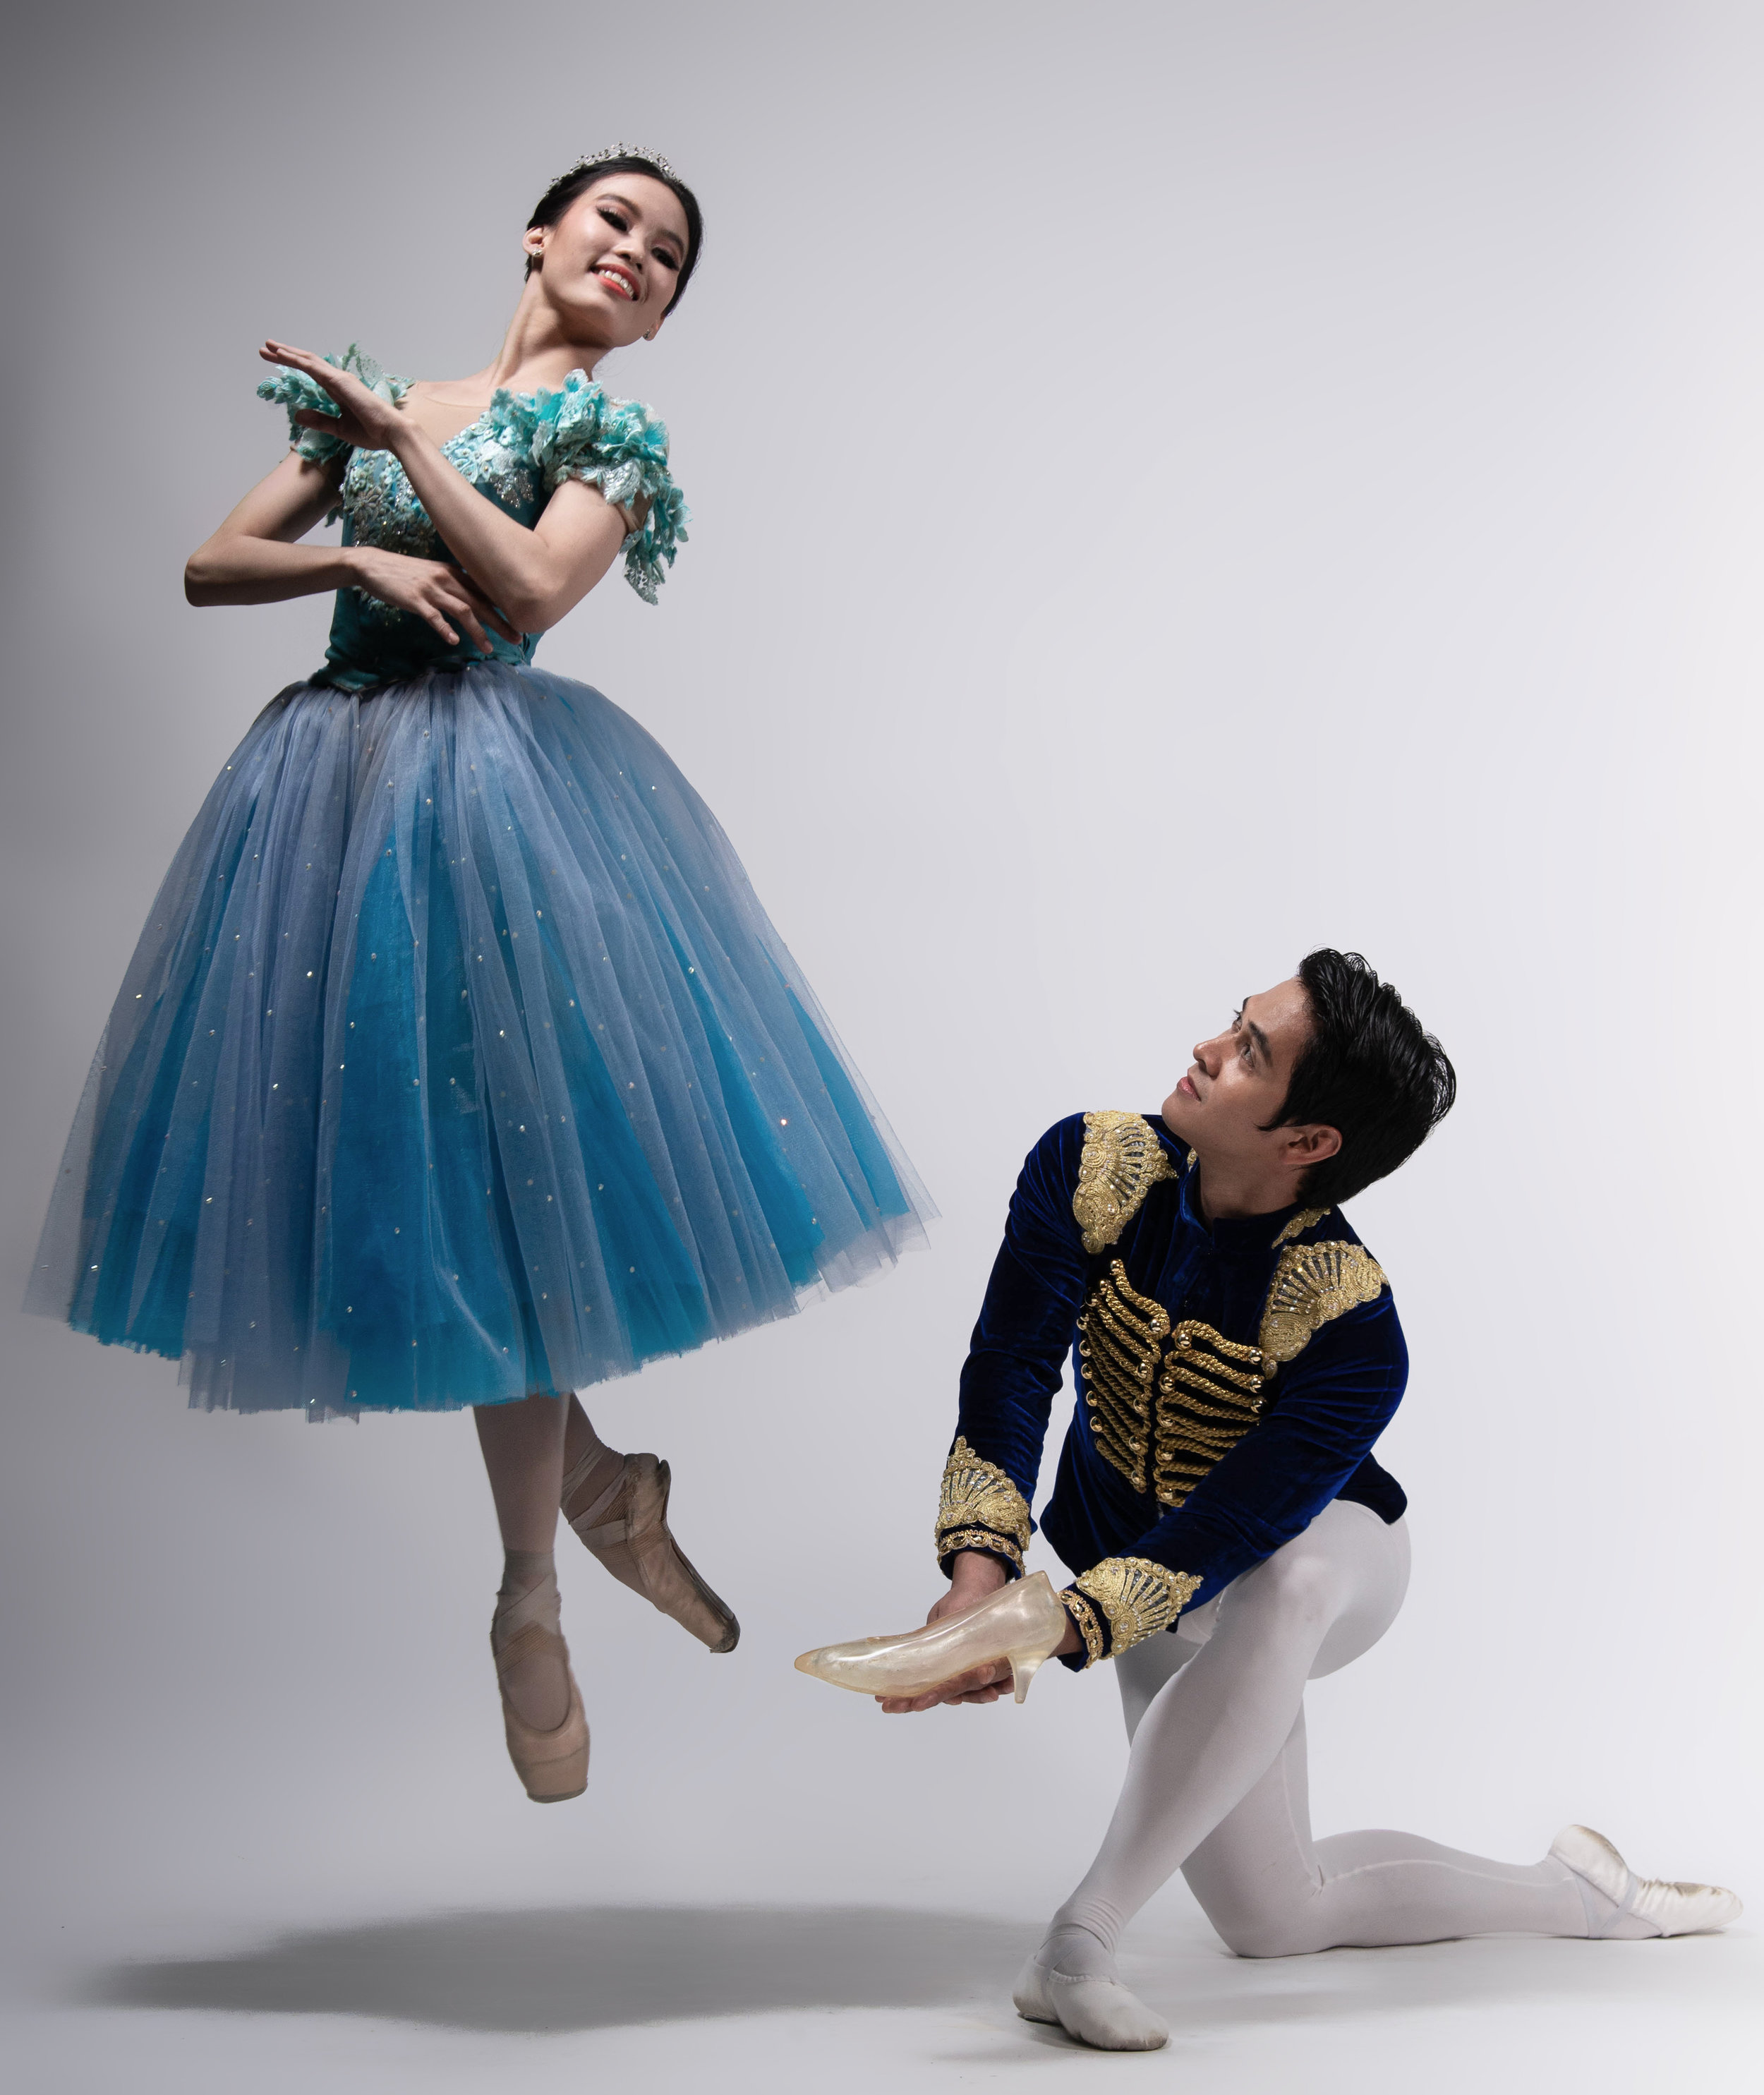 As Cinderella, Joan Emery Sia floats on air when her prince (Rudy De Dios) presents her with the glass slipper she left behind at the ball. Photo by MarBi Photography